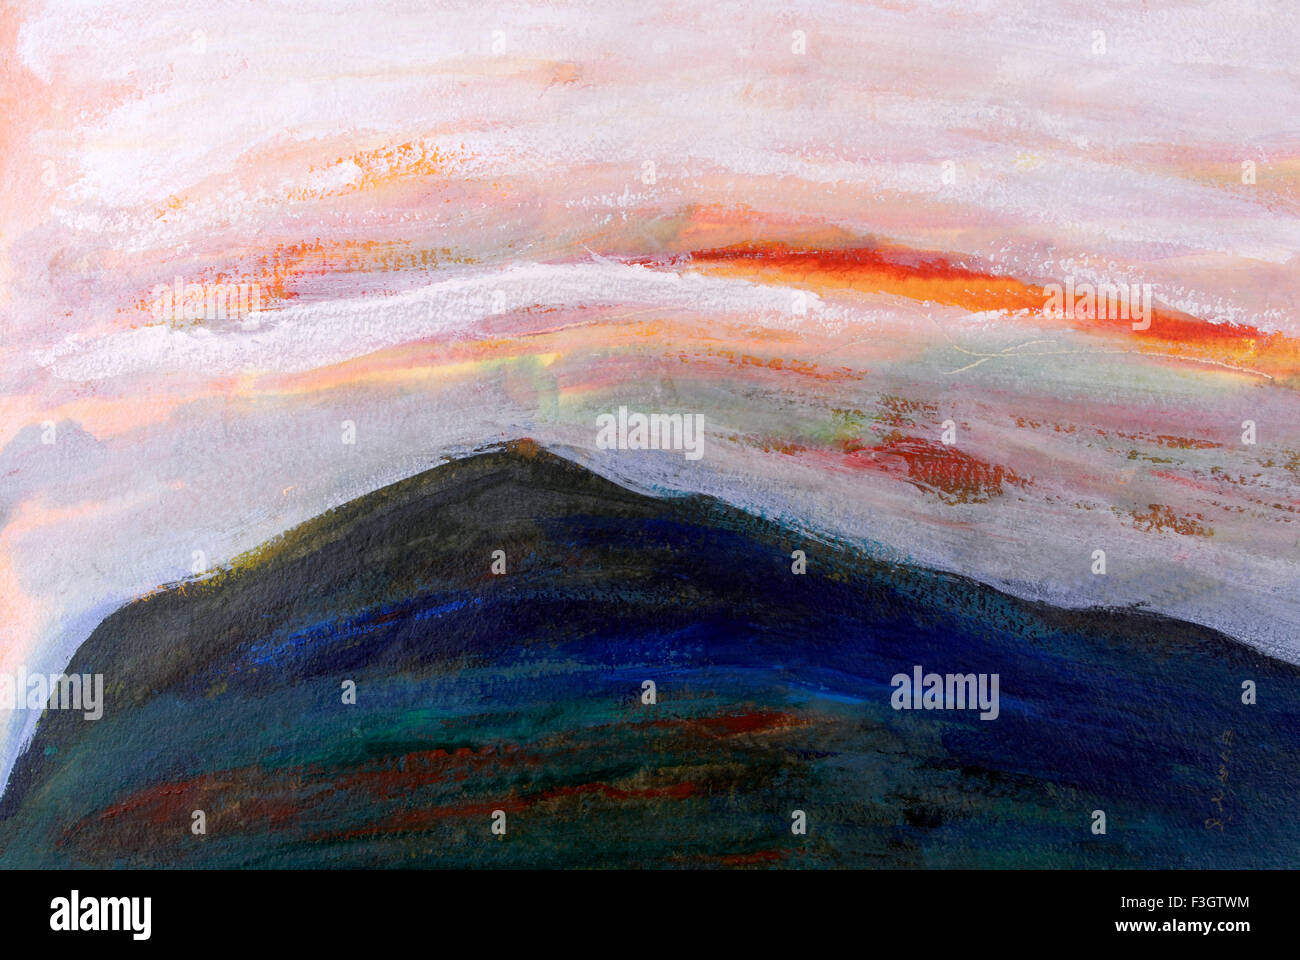 Impression of sunrise in mountains acrylic colors on handmade paper - Stock Image